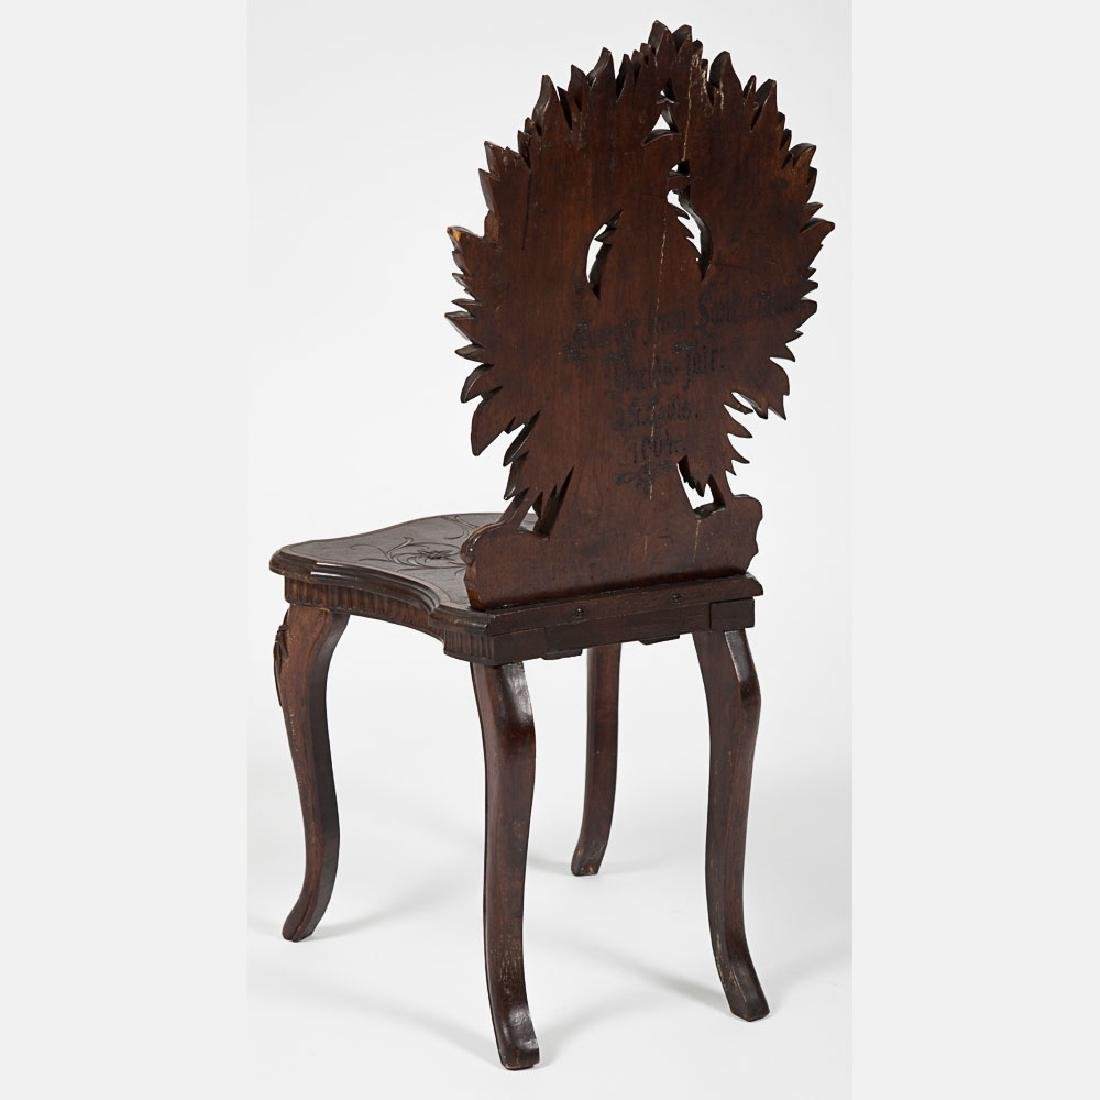 A Black Forest Carved Walnut Side Chair from the - 3